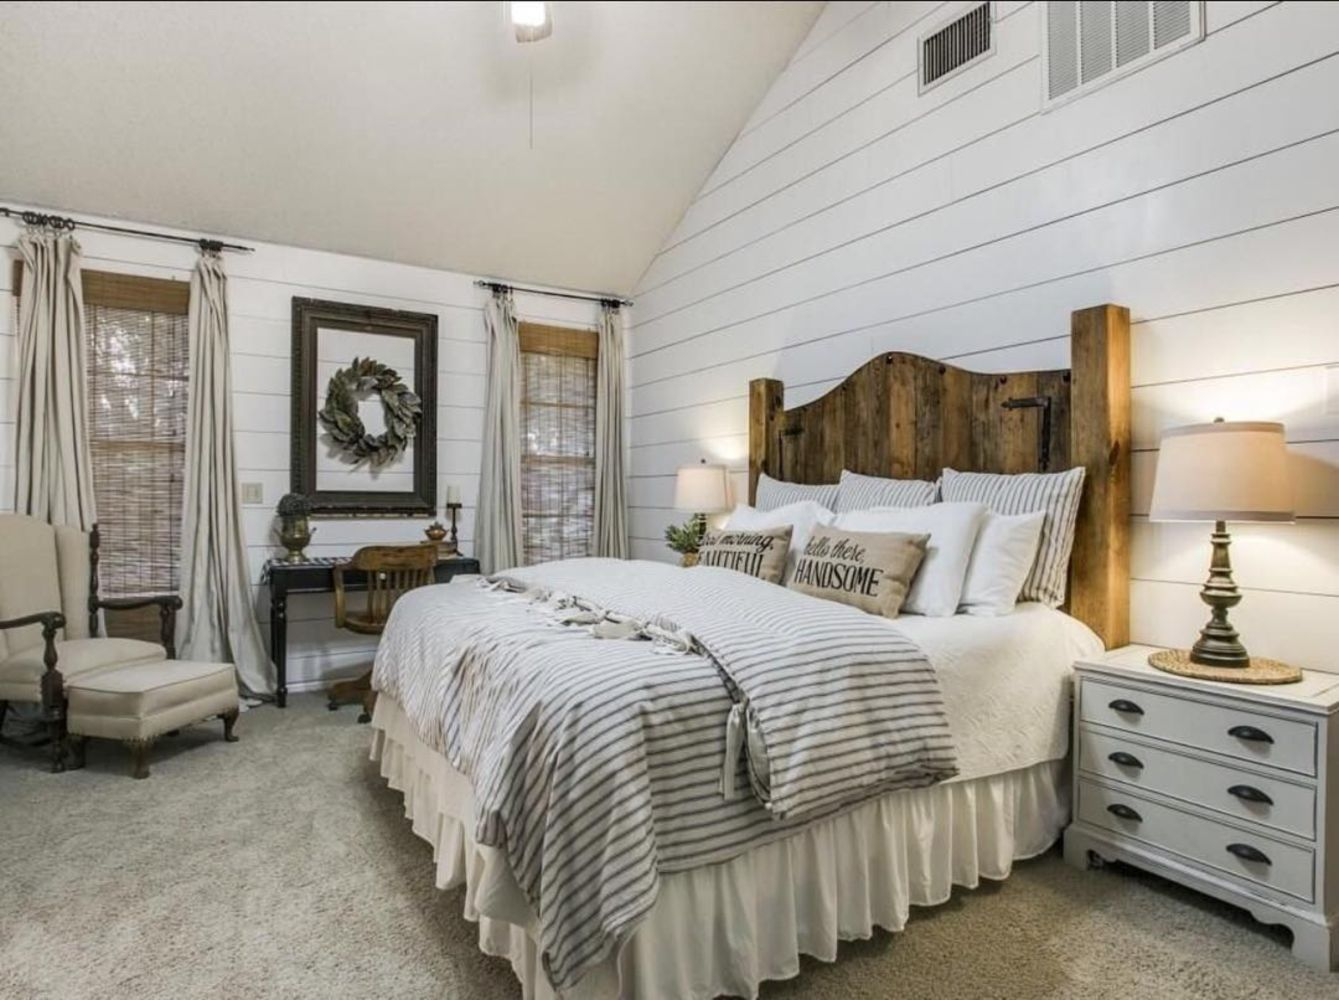 Cool  Beautiful Urban Farmhouse Master Bedroom Remodel Https Cooarchitecture Com